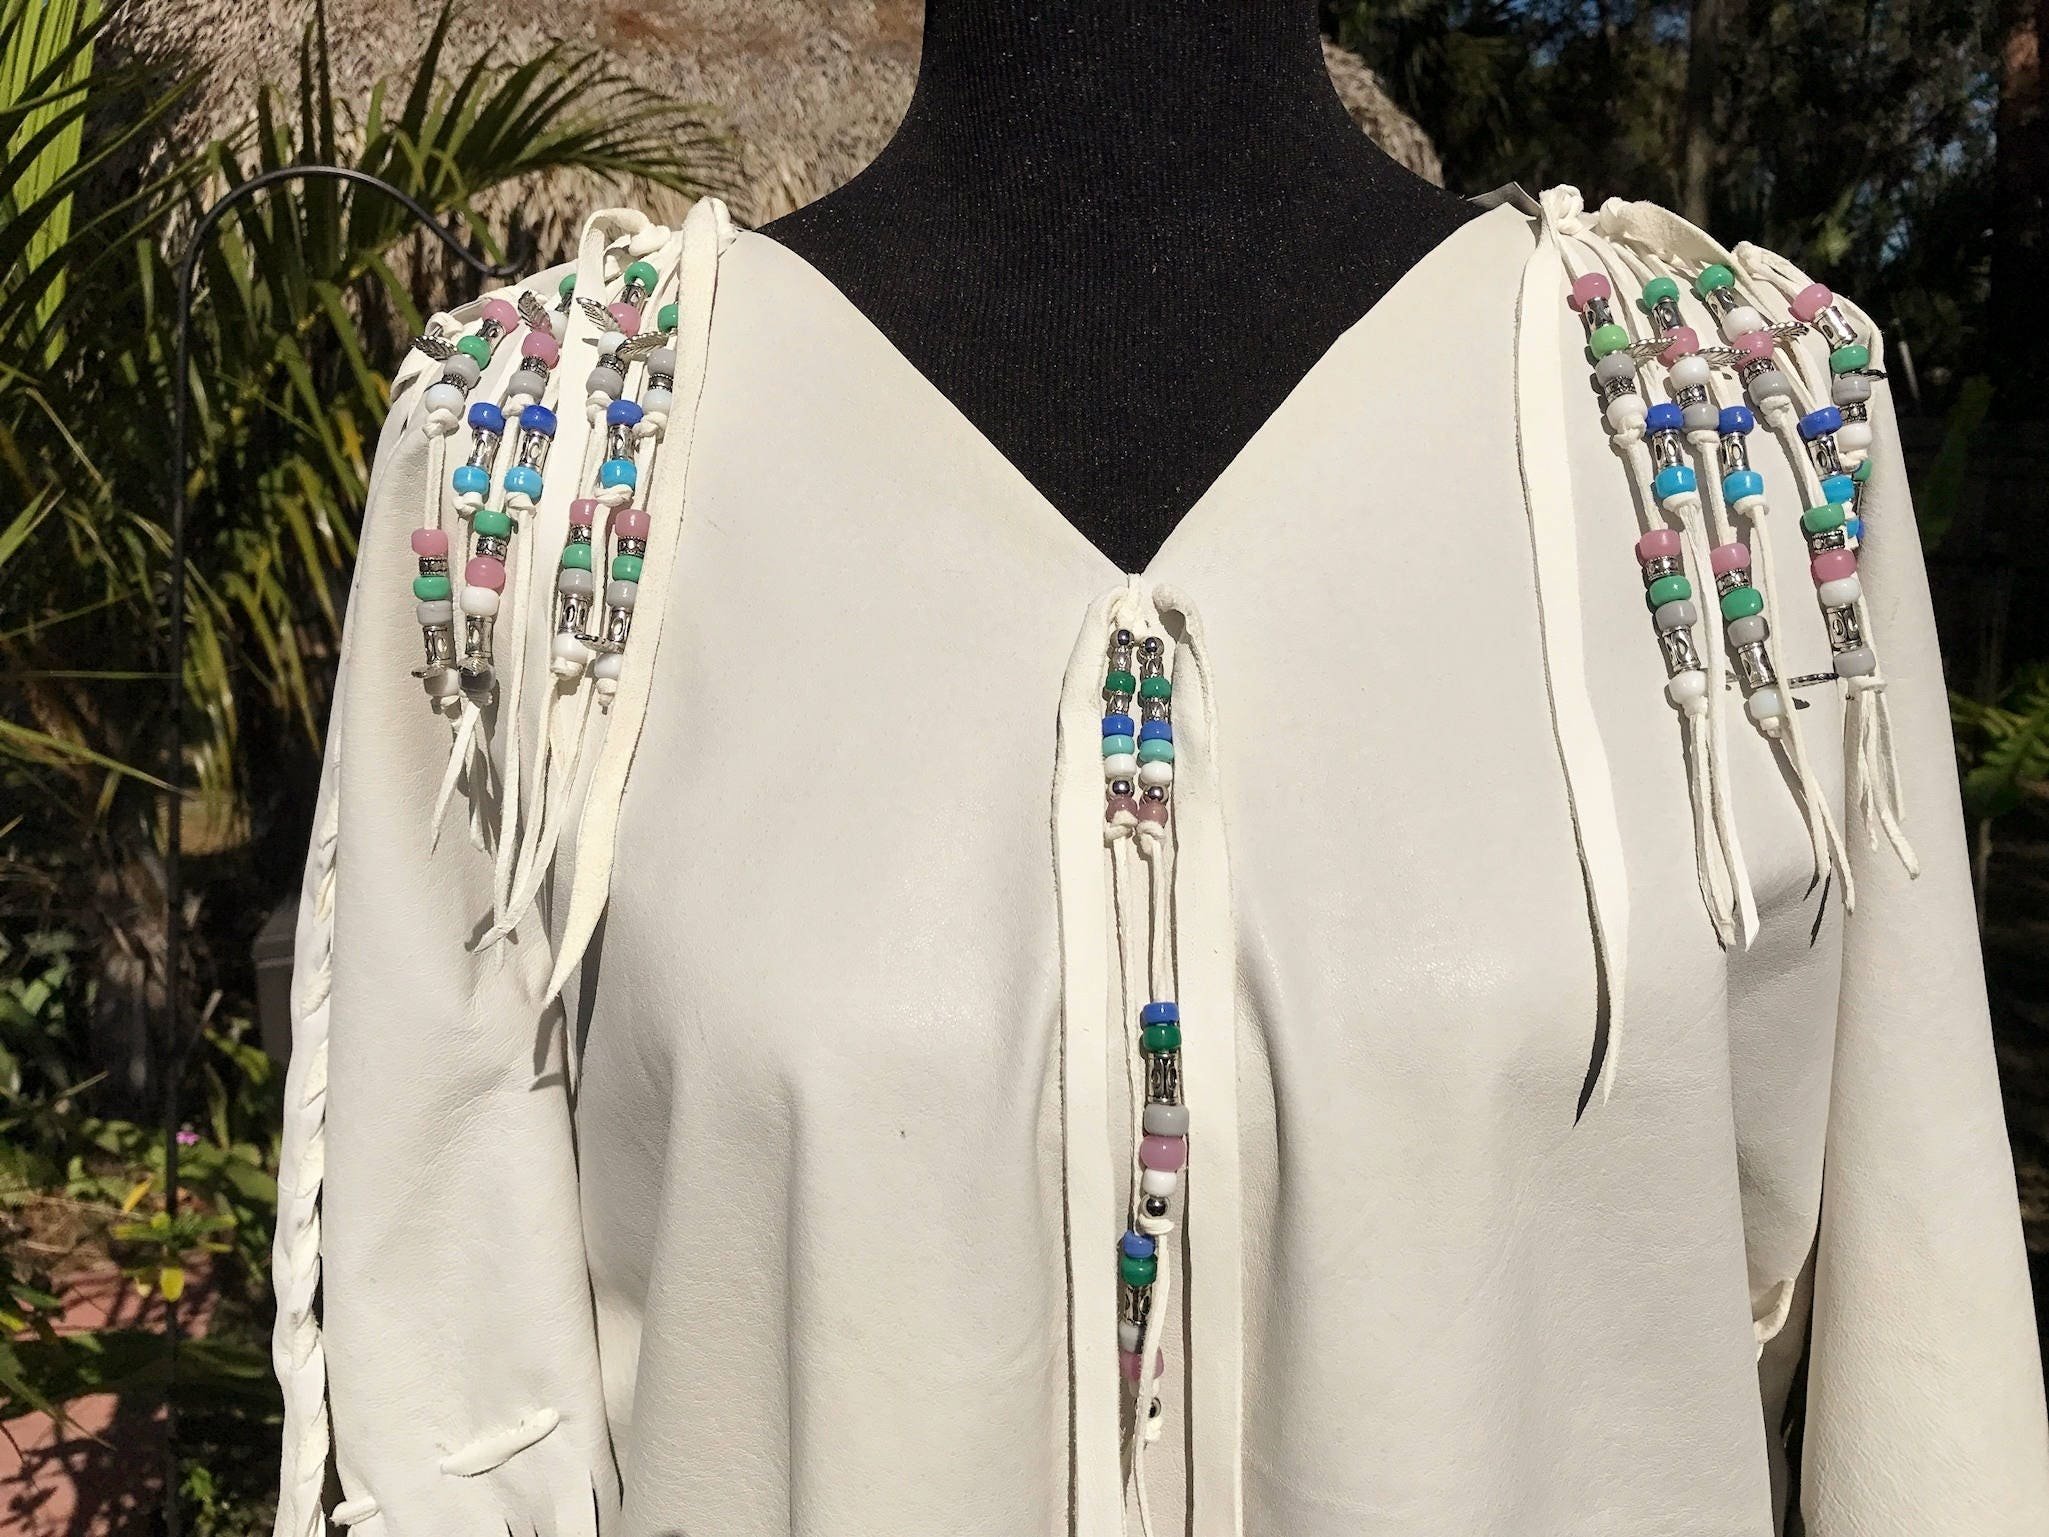 leather wedding dress with cape native native american wedding dress Leather Wedding Dress with Cape Native American Style Fringed Light Gray Pigskin Dress Pow Wow Regalia with White Deerskin and Beads